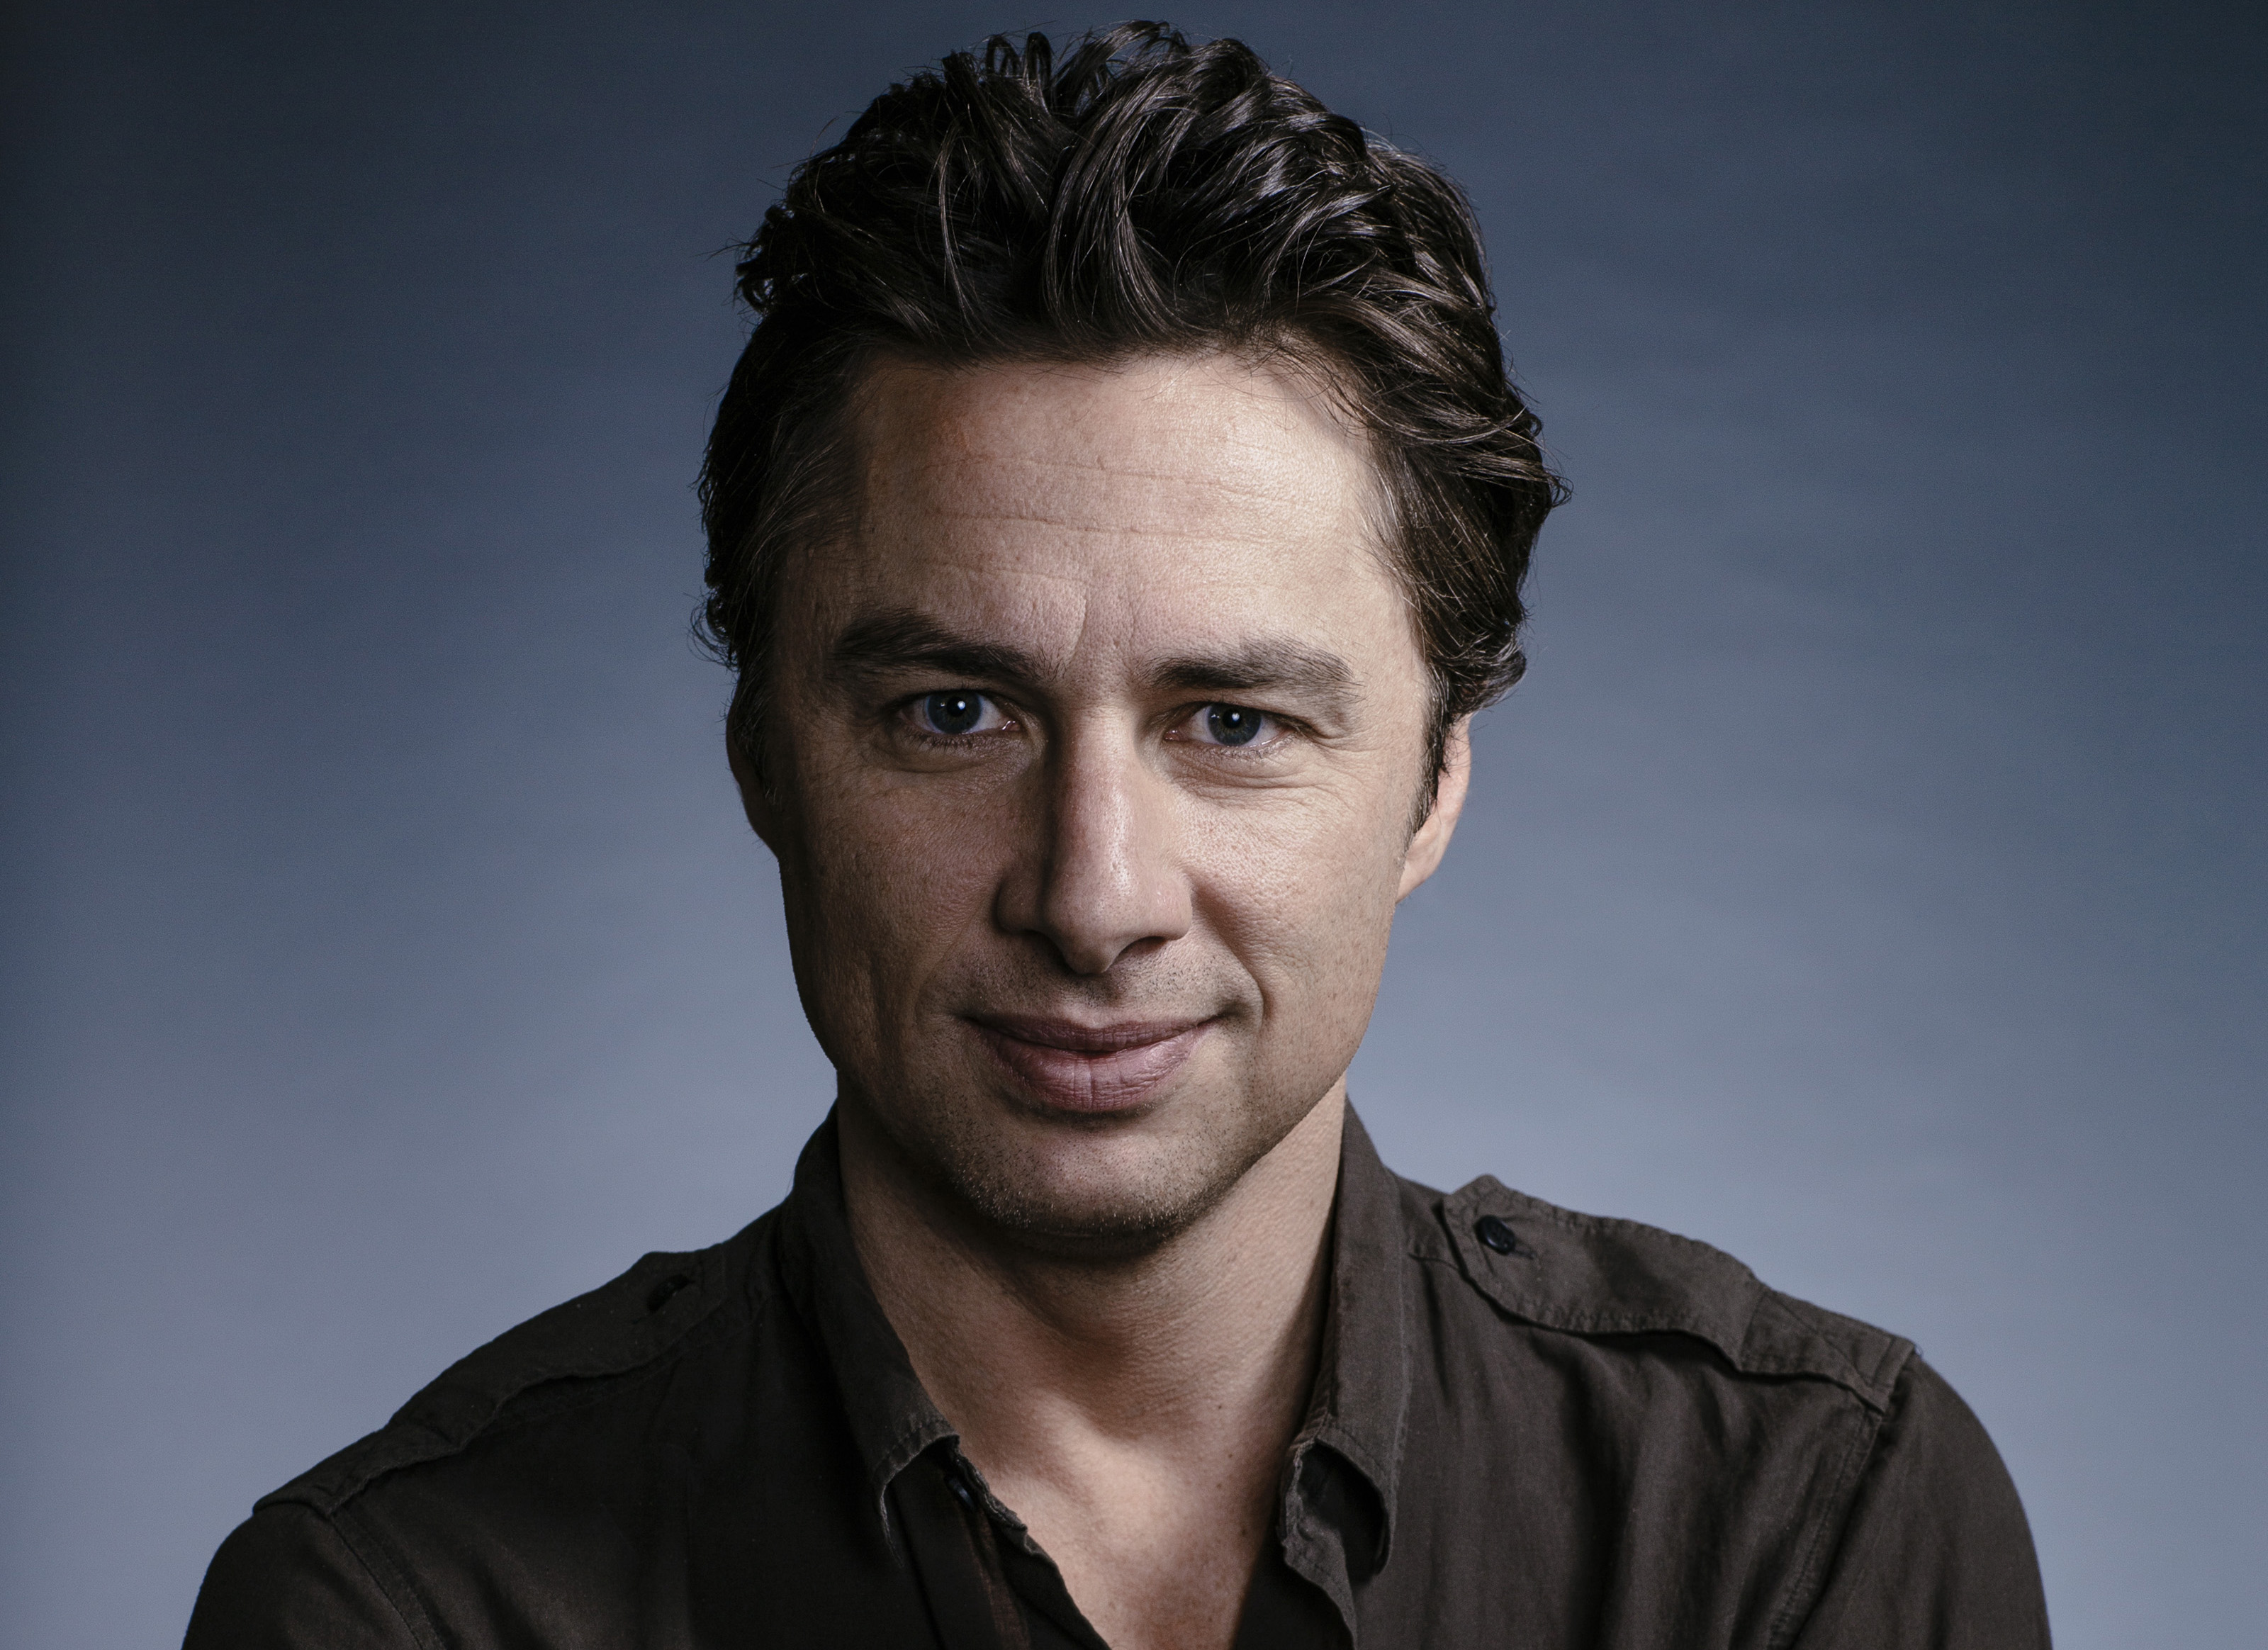 LOS ANGELES, CA - JUNE 23, 2014 - American Actor, Director and screenwriter Zach Braff poses at the Four Seasons Hotel, June 23, 2014, in Los Angeles, California. Braff first became known in 2001 for his role as Dr. John Dorian on the television series Scrubs, for which he was nominated for the Primetime Emmy Award for Outstanding Lead Actor in 2005. In 2004, Braff made his directorial debut with Garden State. He returned to his home state New Jersey to shoot the film, which was produced for $2.5 million. In April 2013, Braff announced he was launching a Kickstarter campaign to raise funds to shoot a new film, titled Wish I Was Here. (Photo by Bret Hartman/For The Washington Post)